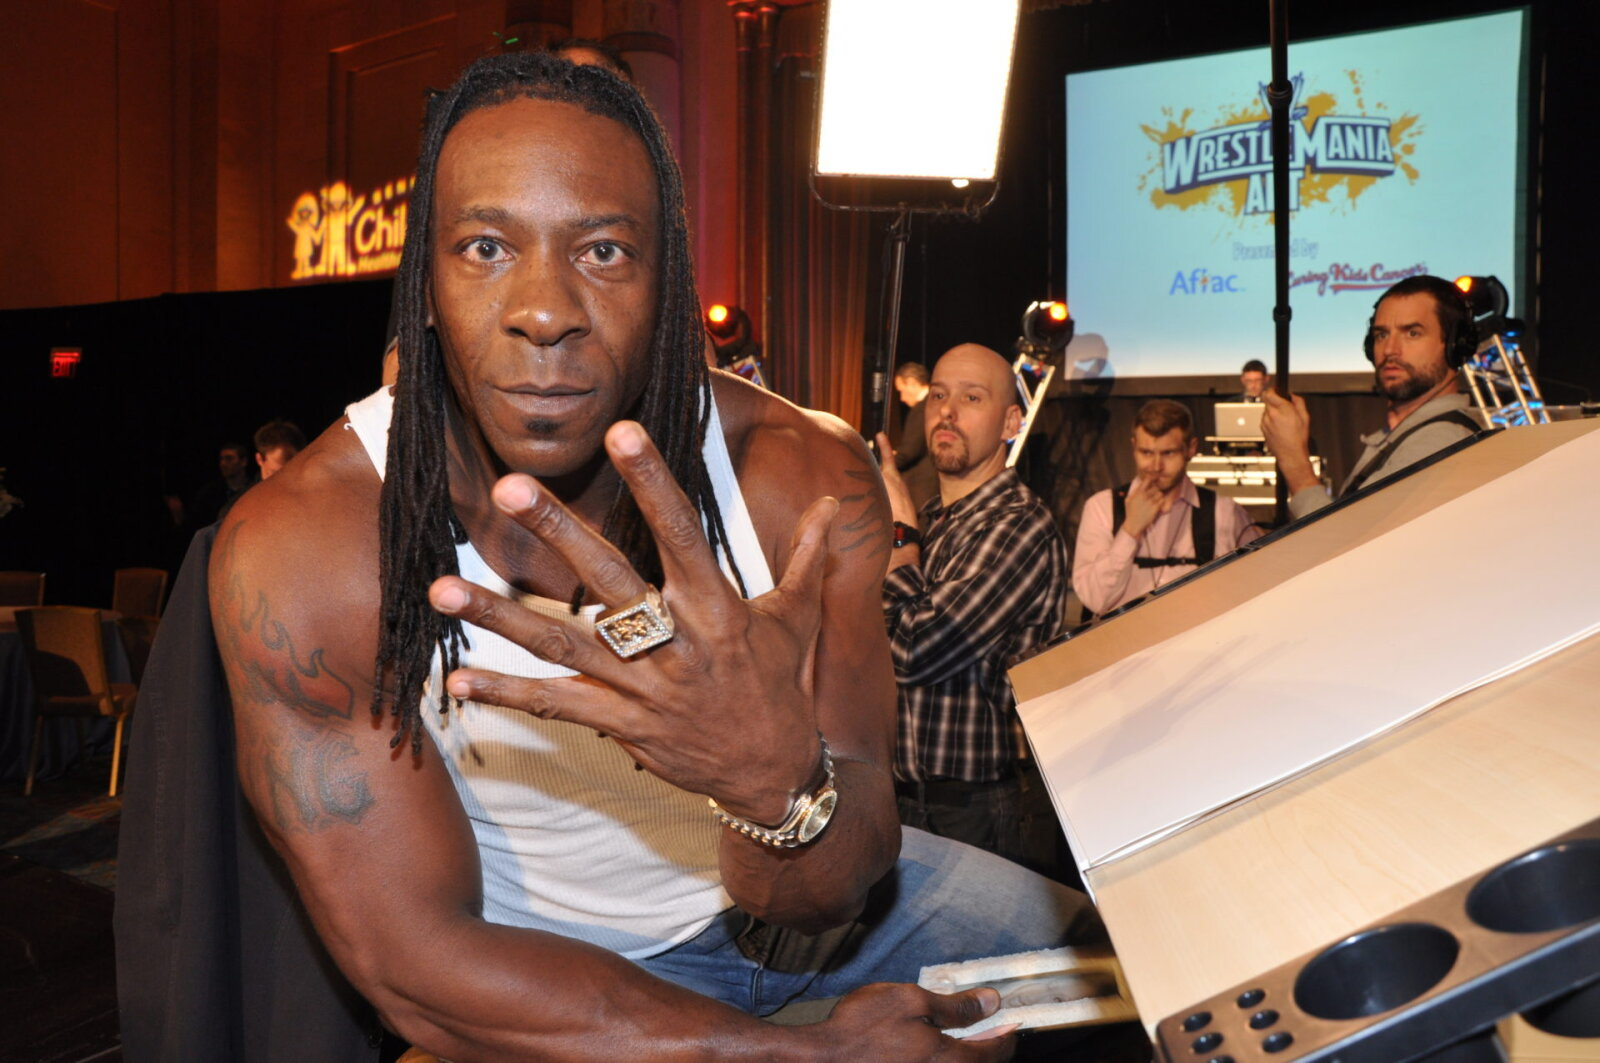 Booker T at a WWE Event